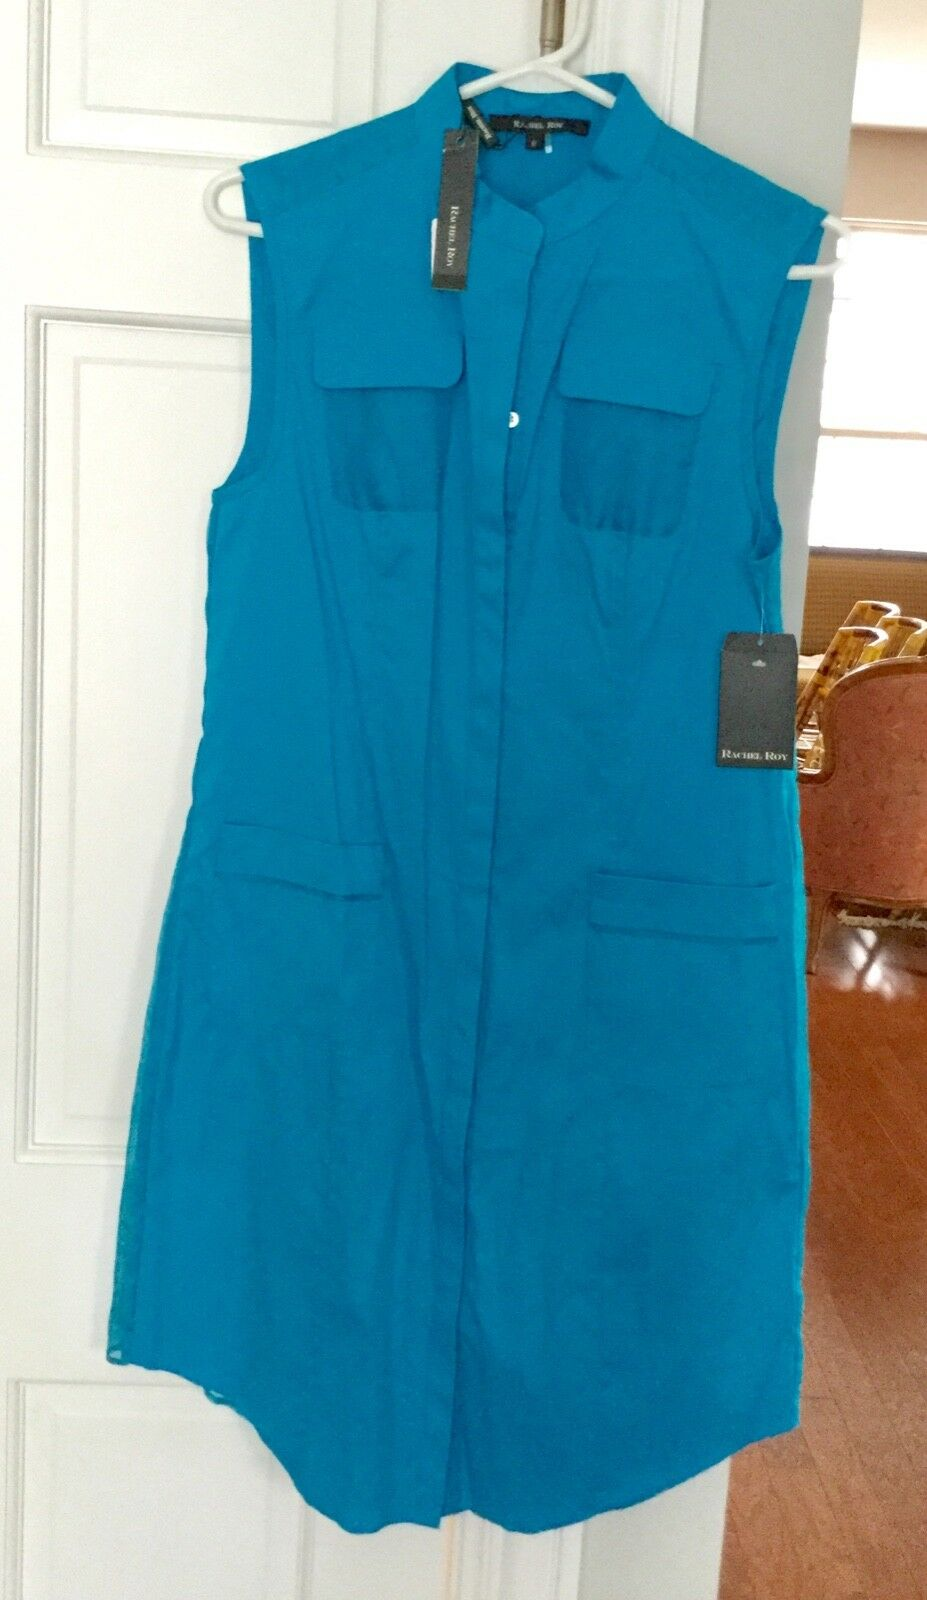 RACHEL ROY Turquoise Shirt Dress- Sz 6 - Cotton Blend w  Silk - Sleeveless - NWT